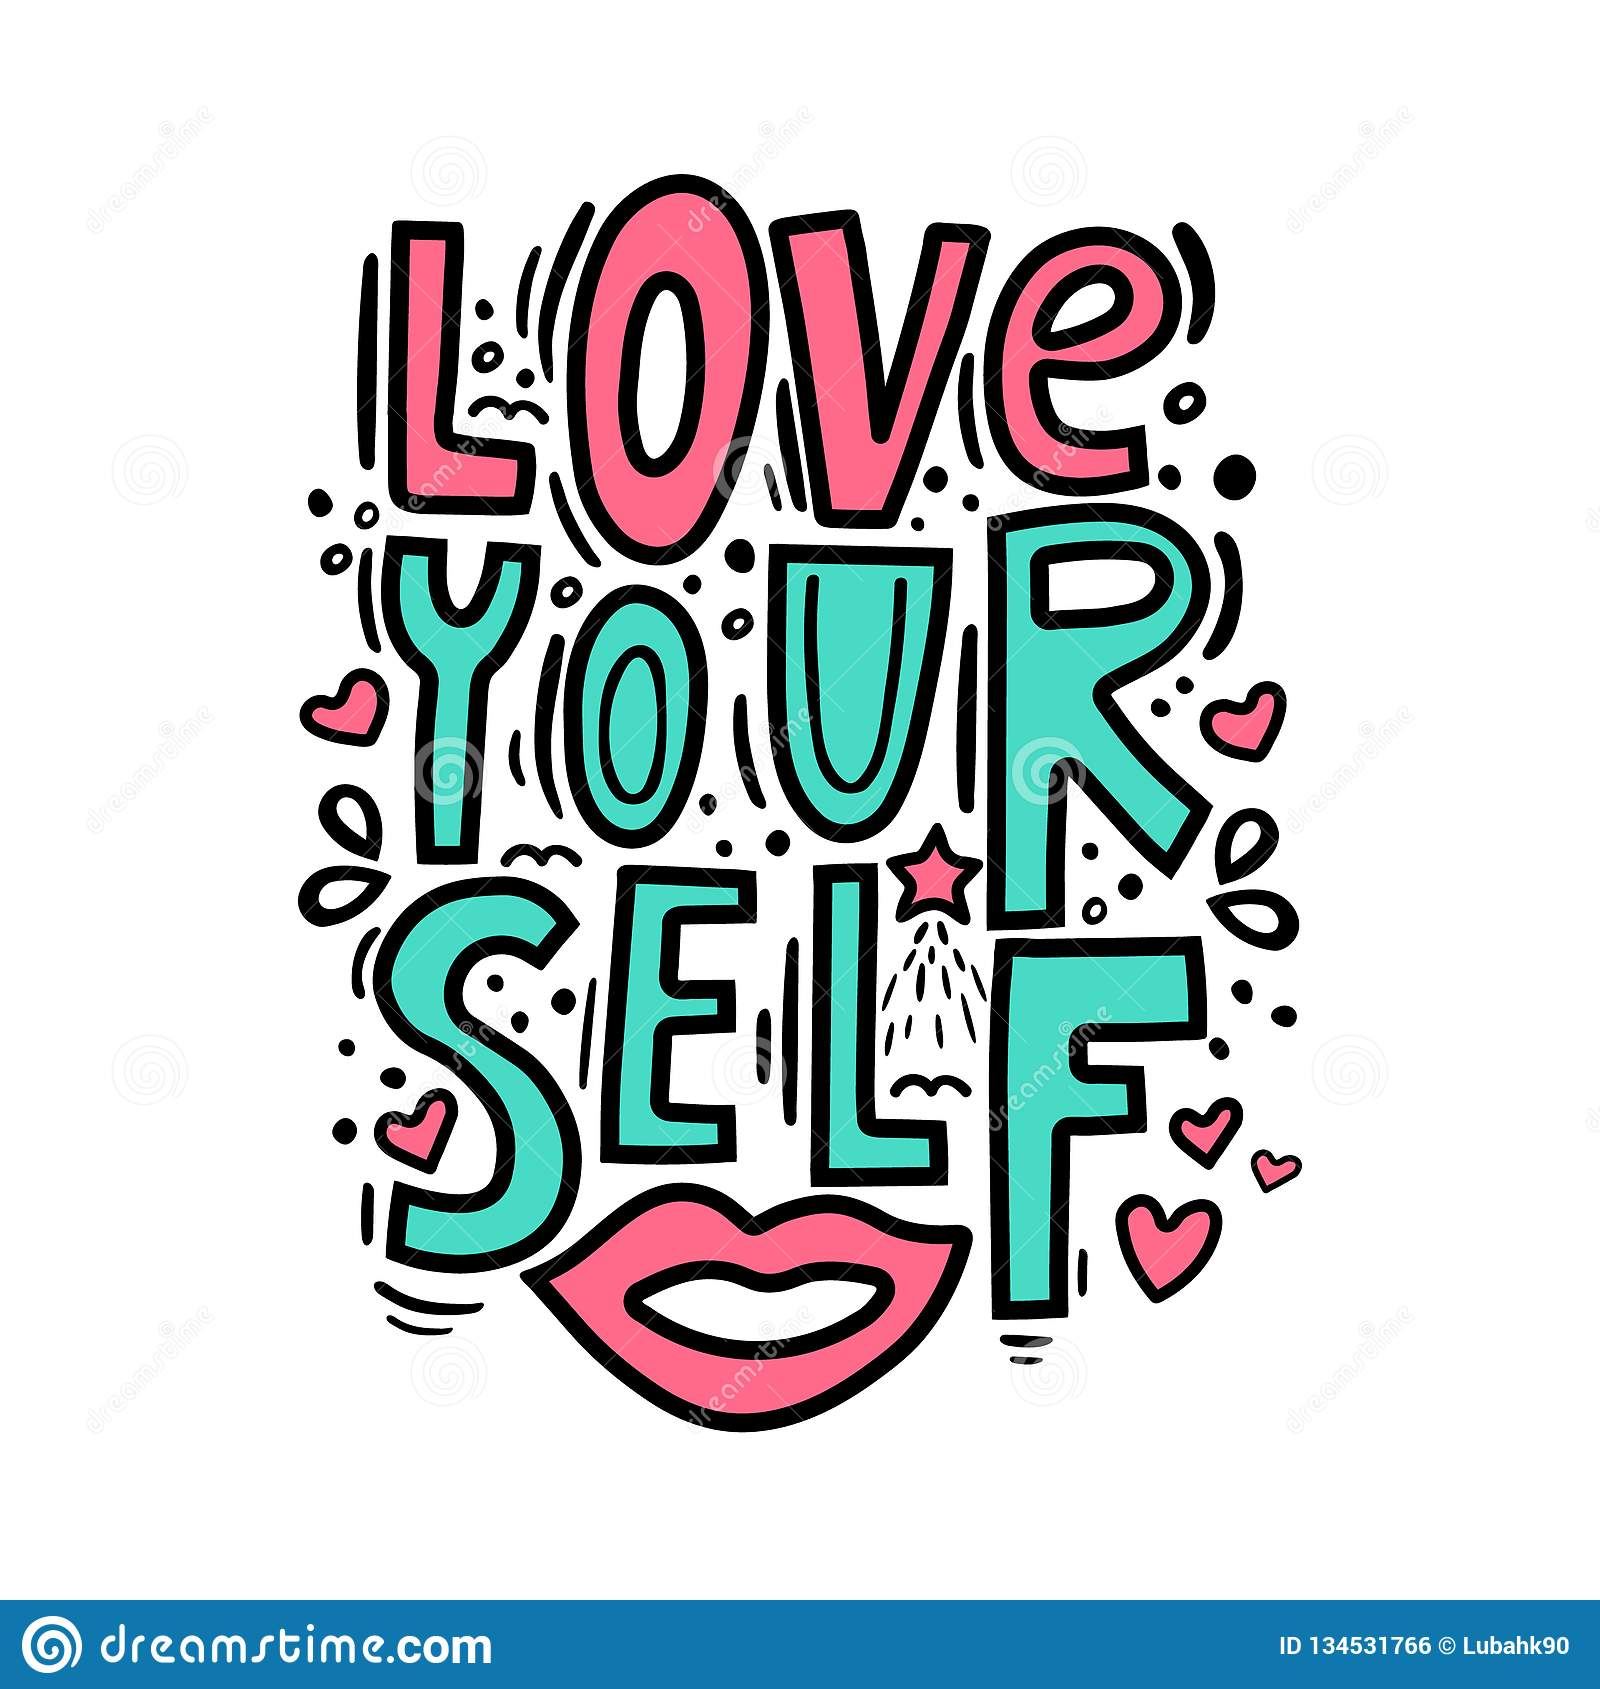 Love yourself - motivational quote. Modern brush pen lettering. Love yourself hand made color text. Handwritten